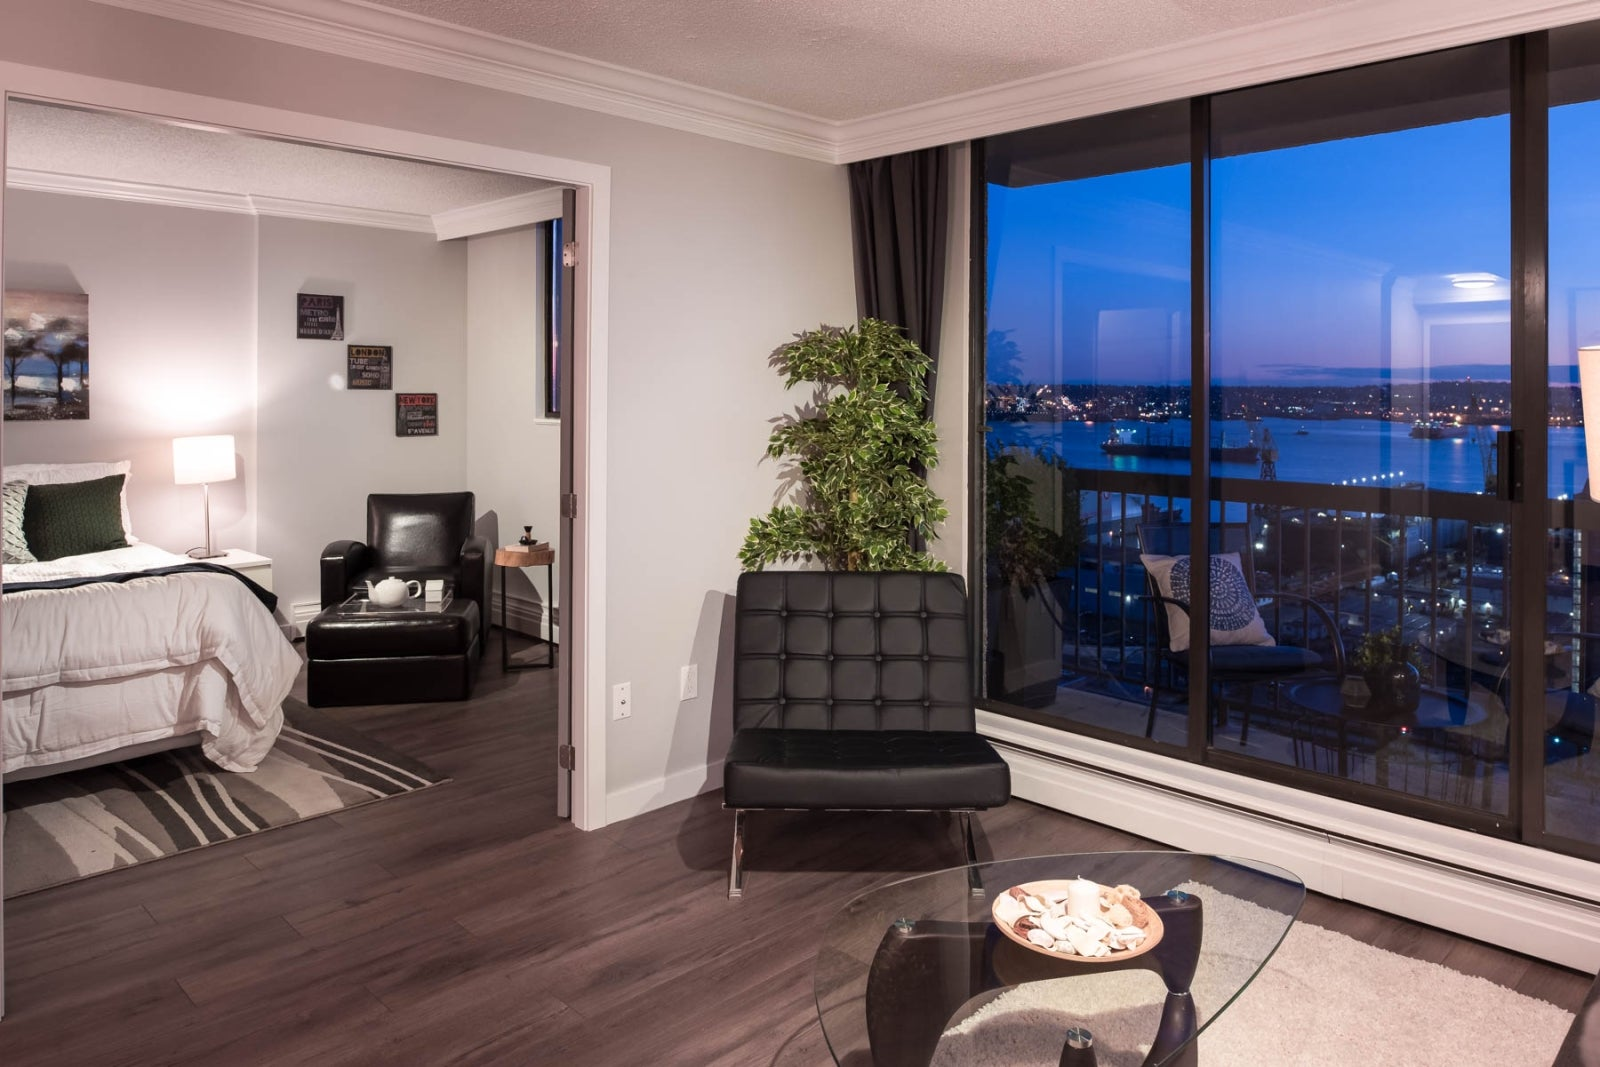 1601 145 ST GEORGES AVENUE - Lower Lonsdale Apartment/Condo for sale, 1 Bedroom (R2244405) #30